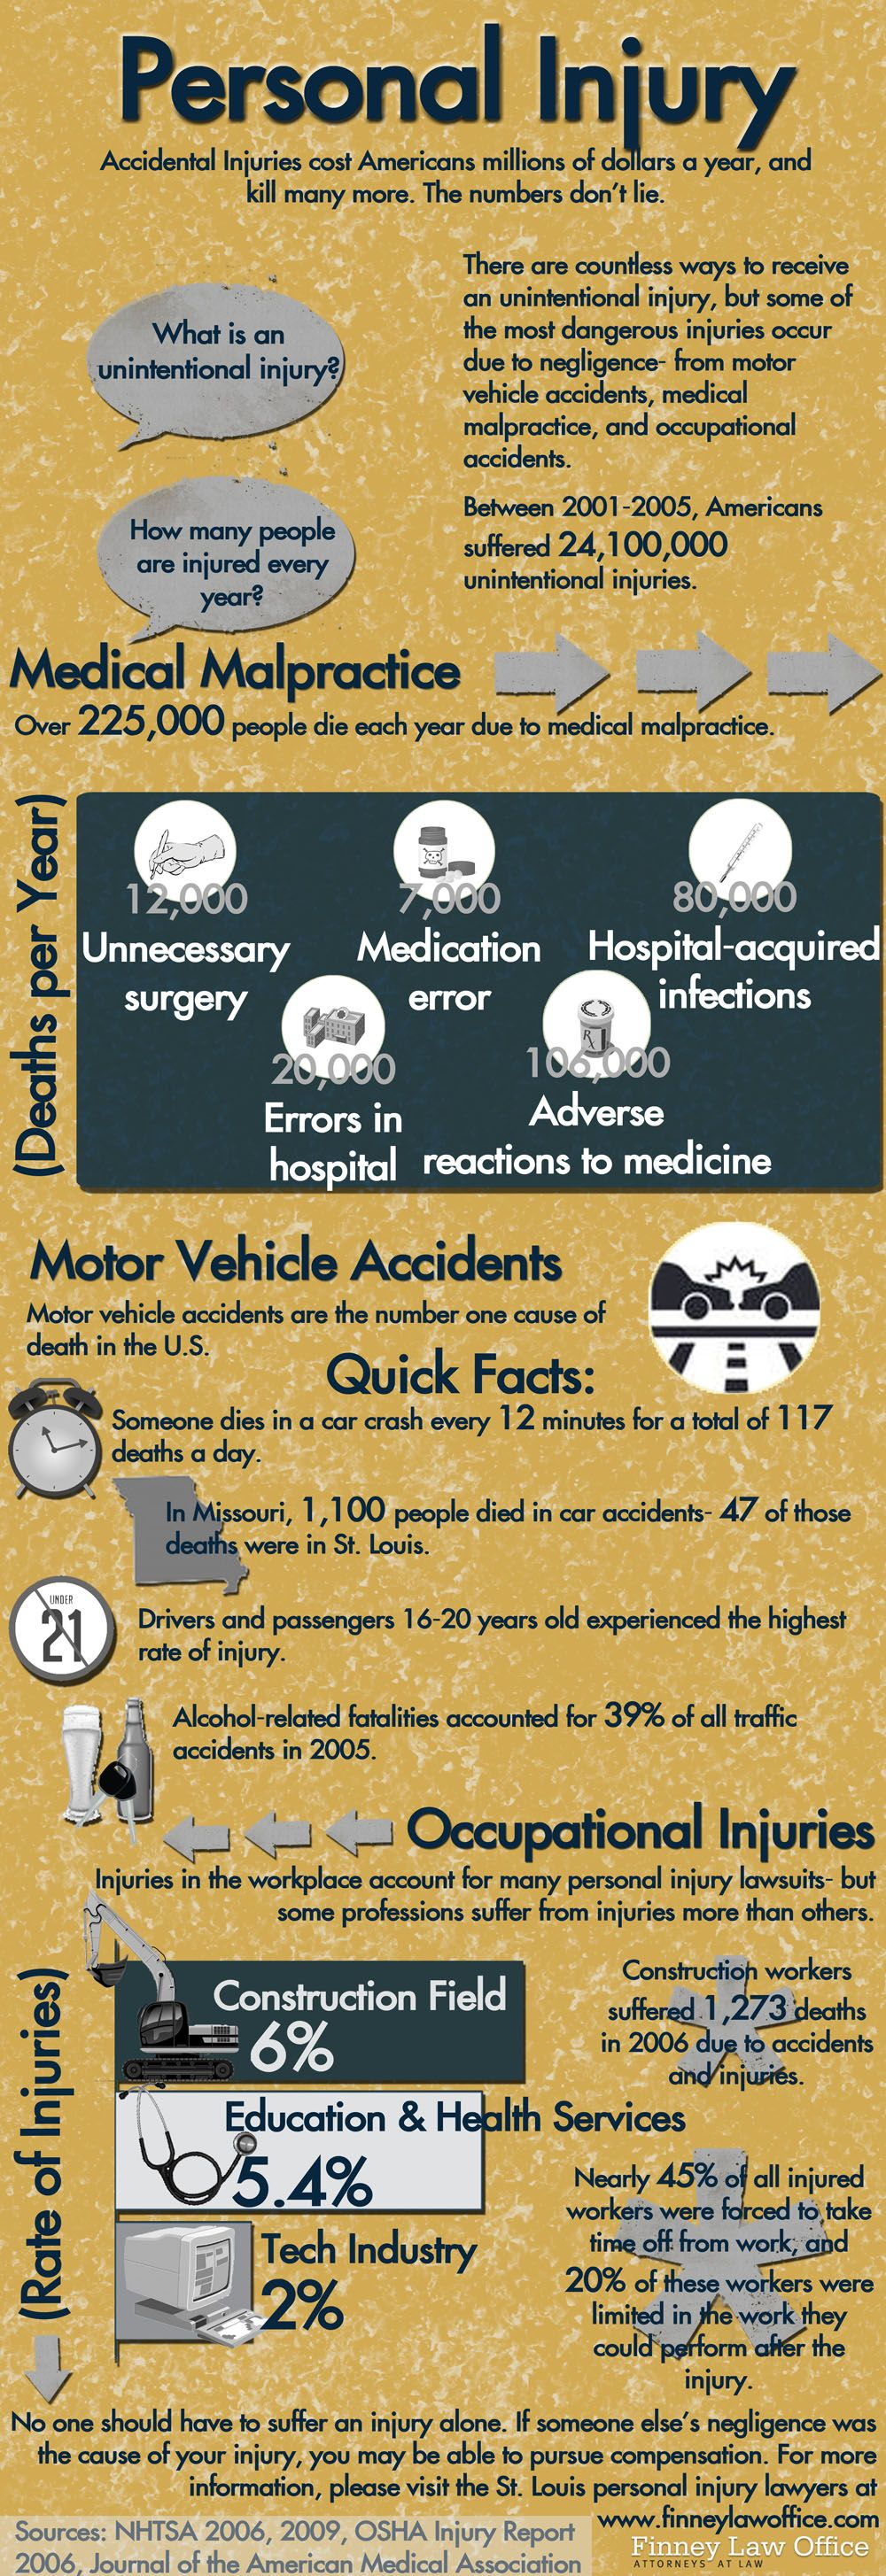 Accidents In America Cost Victims Millions Of Dollars Cause Severe Physical Injuries May Eve